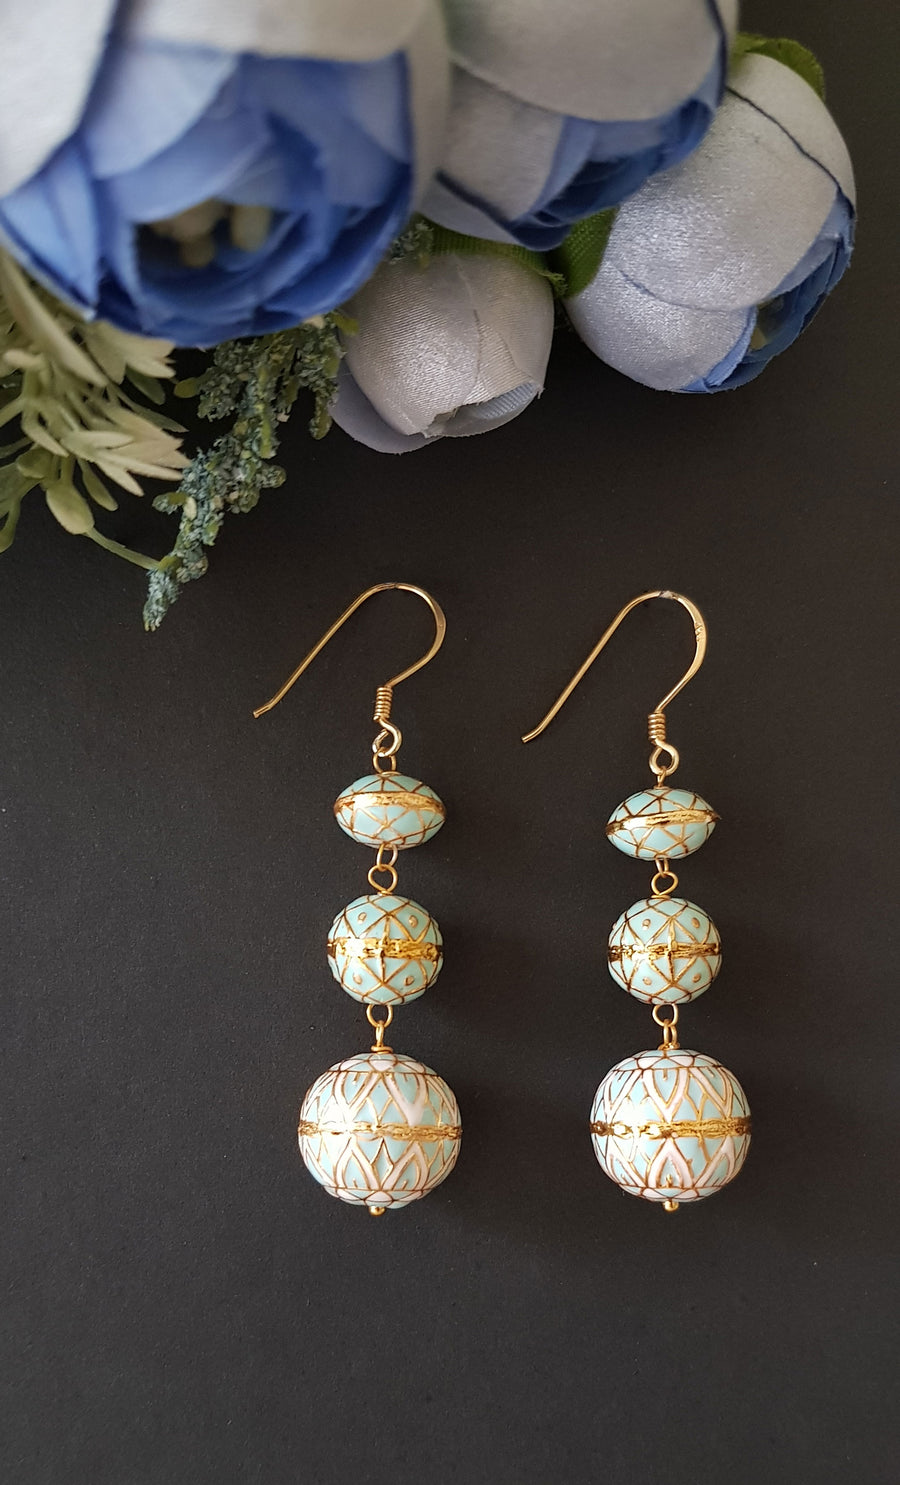 Zeina - Painted Enamel Meena Earrings